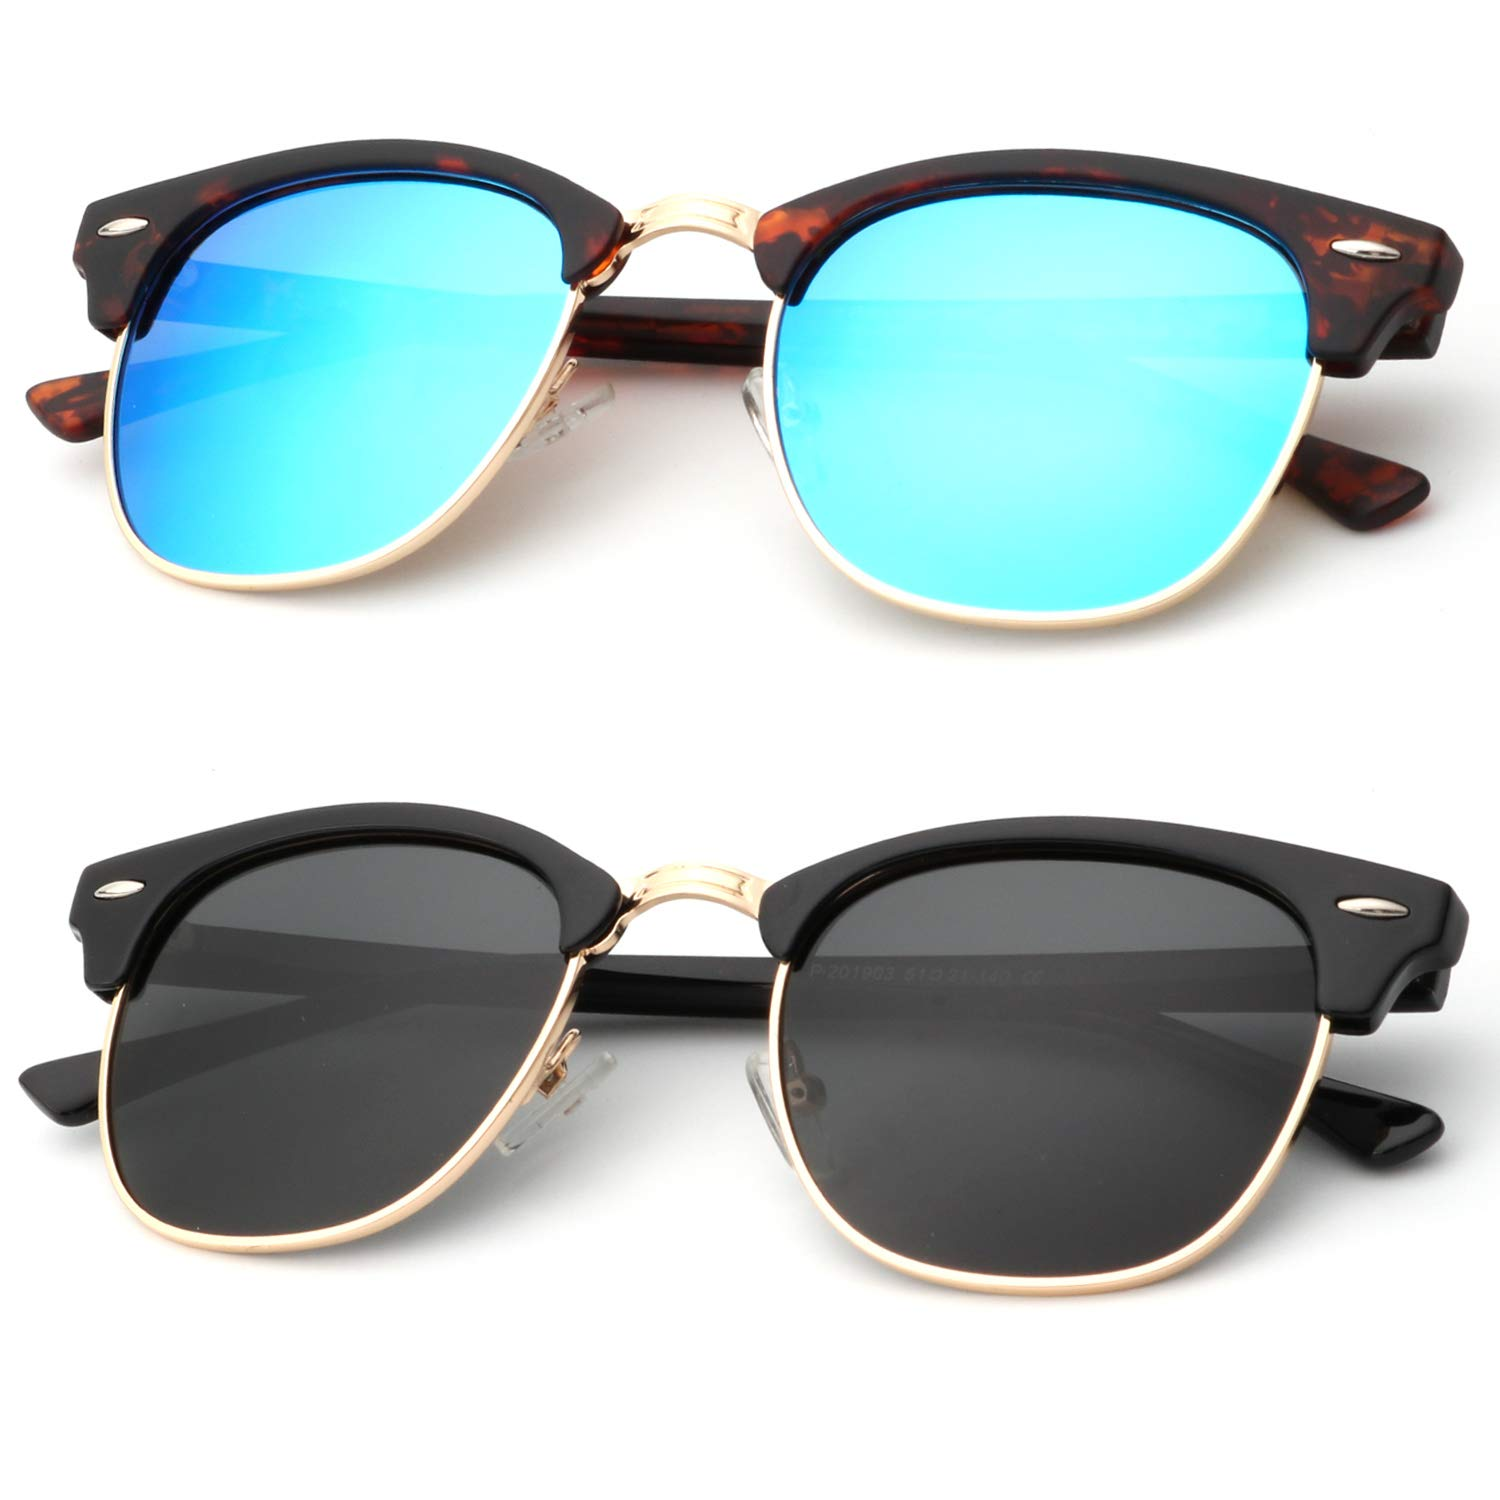 Unisex Polarized Sunglasses Stylish Sun Glasses for Men and Women Color Mirror Lens Multi Pack Options by KALIYADI